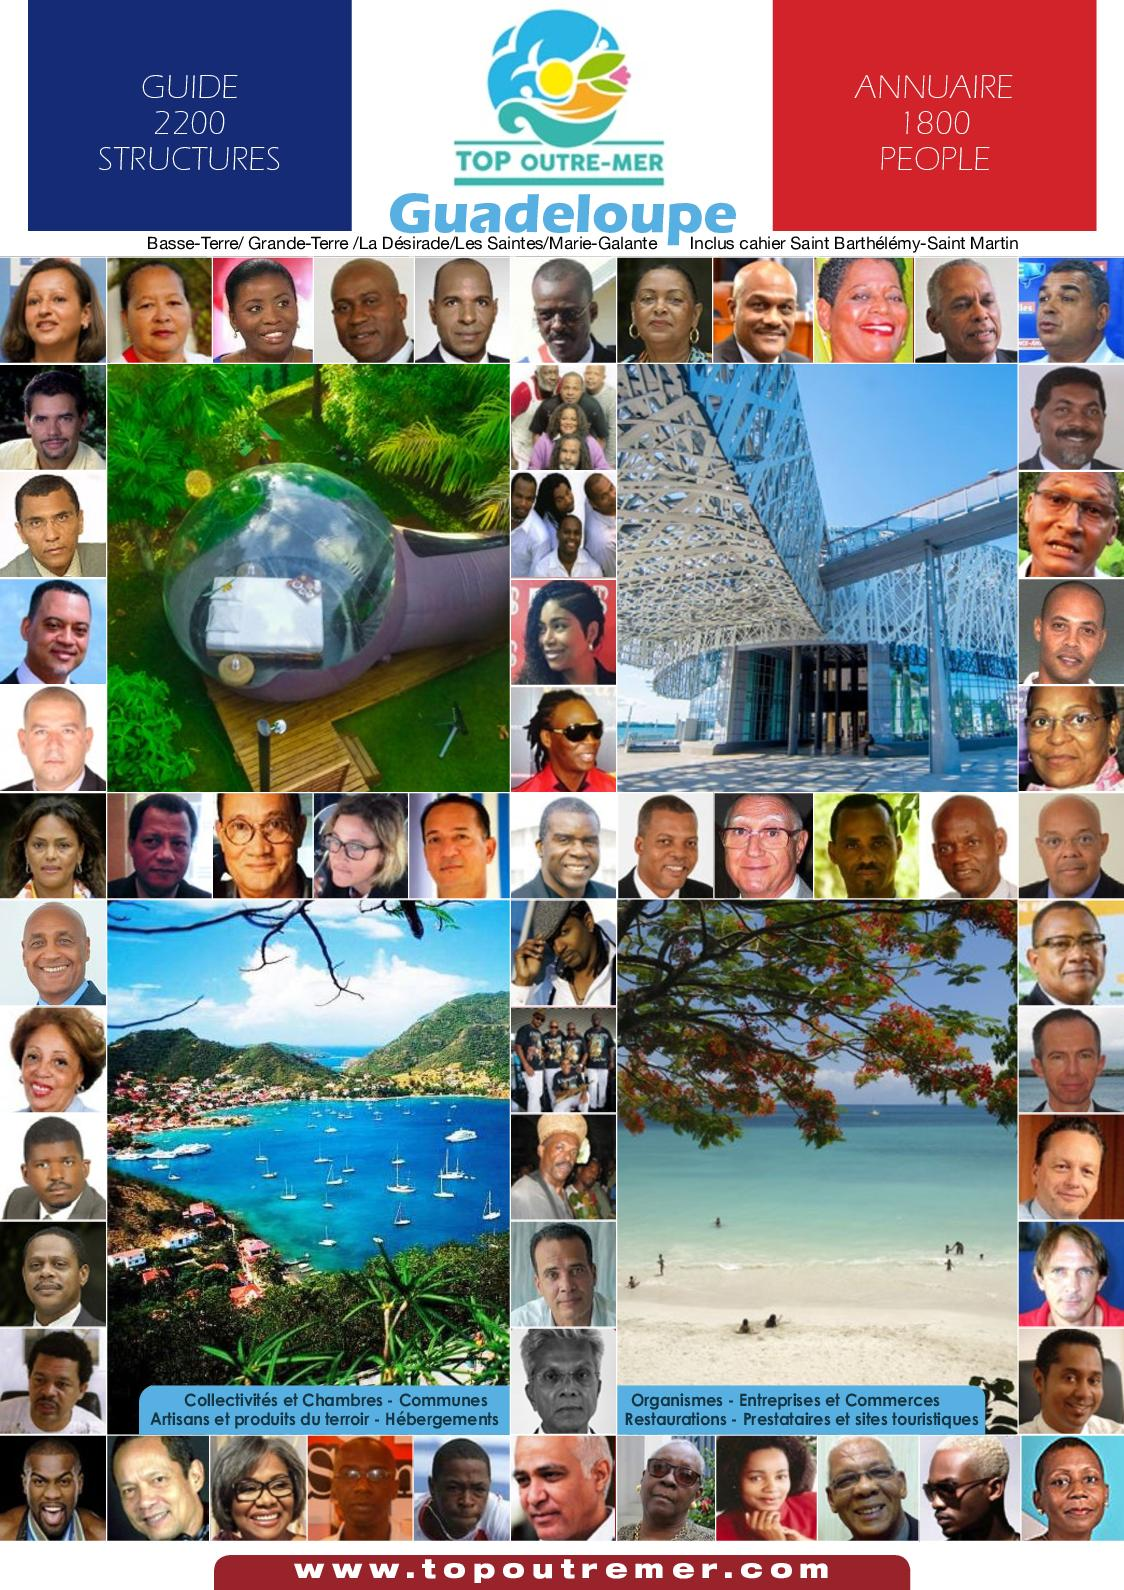 Guide Top Outremer 2018-2019 Guadeloupe St Martin/St Barth.